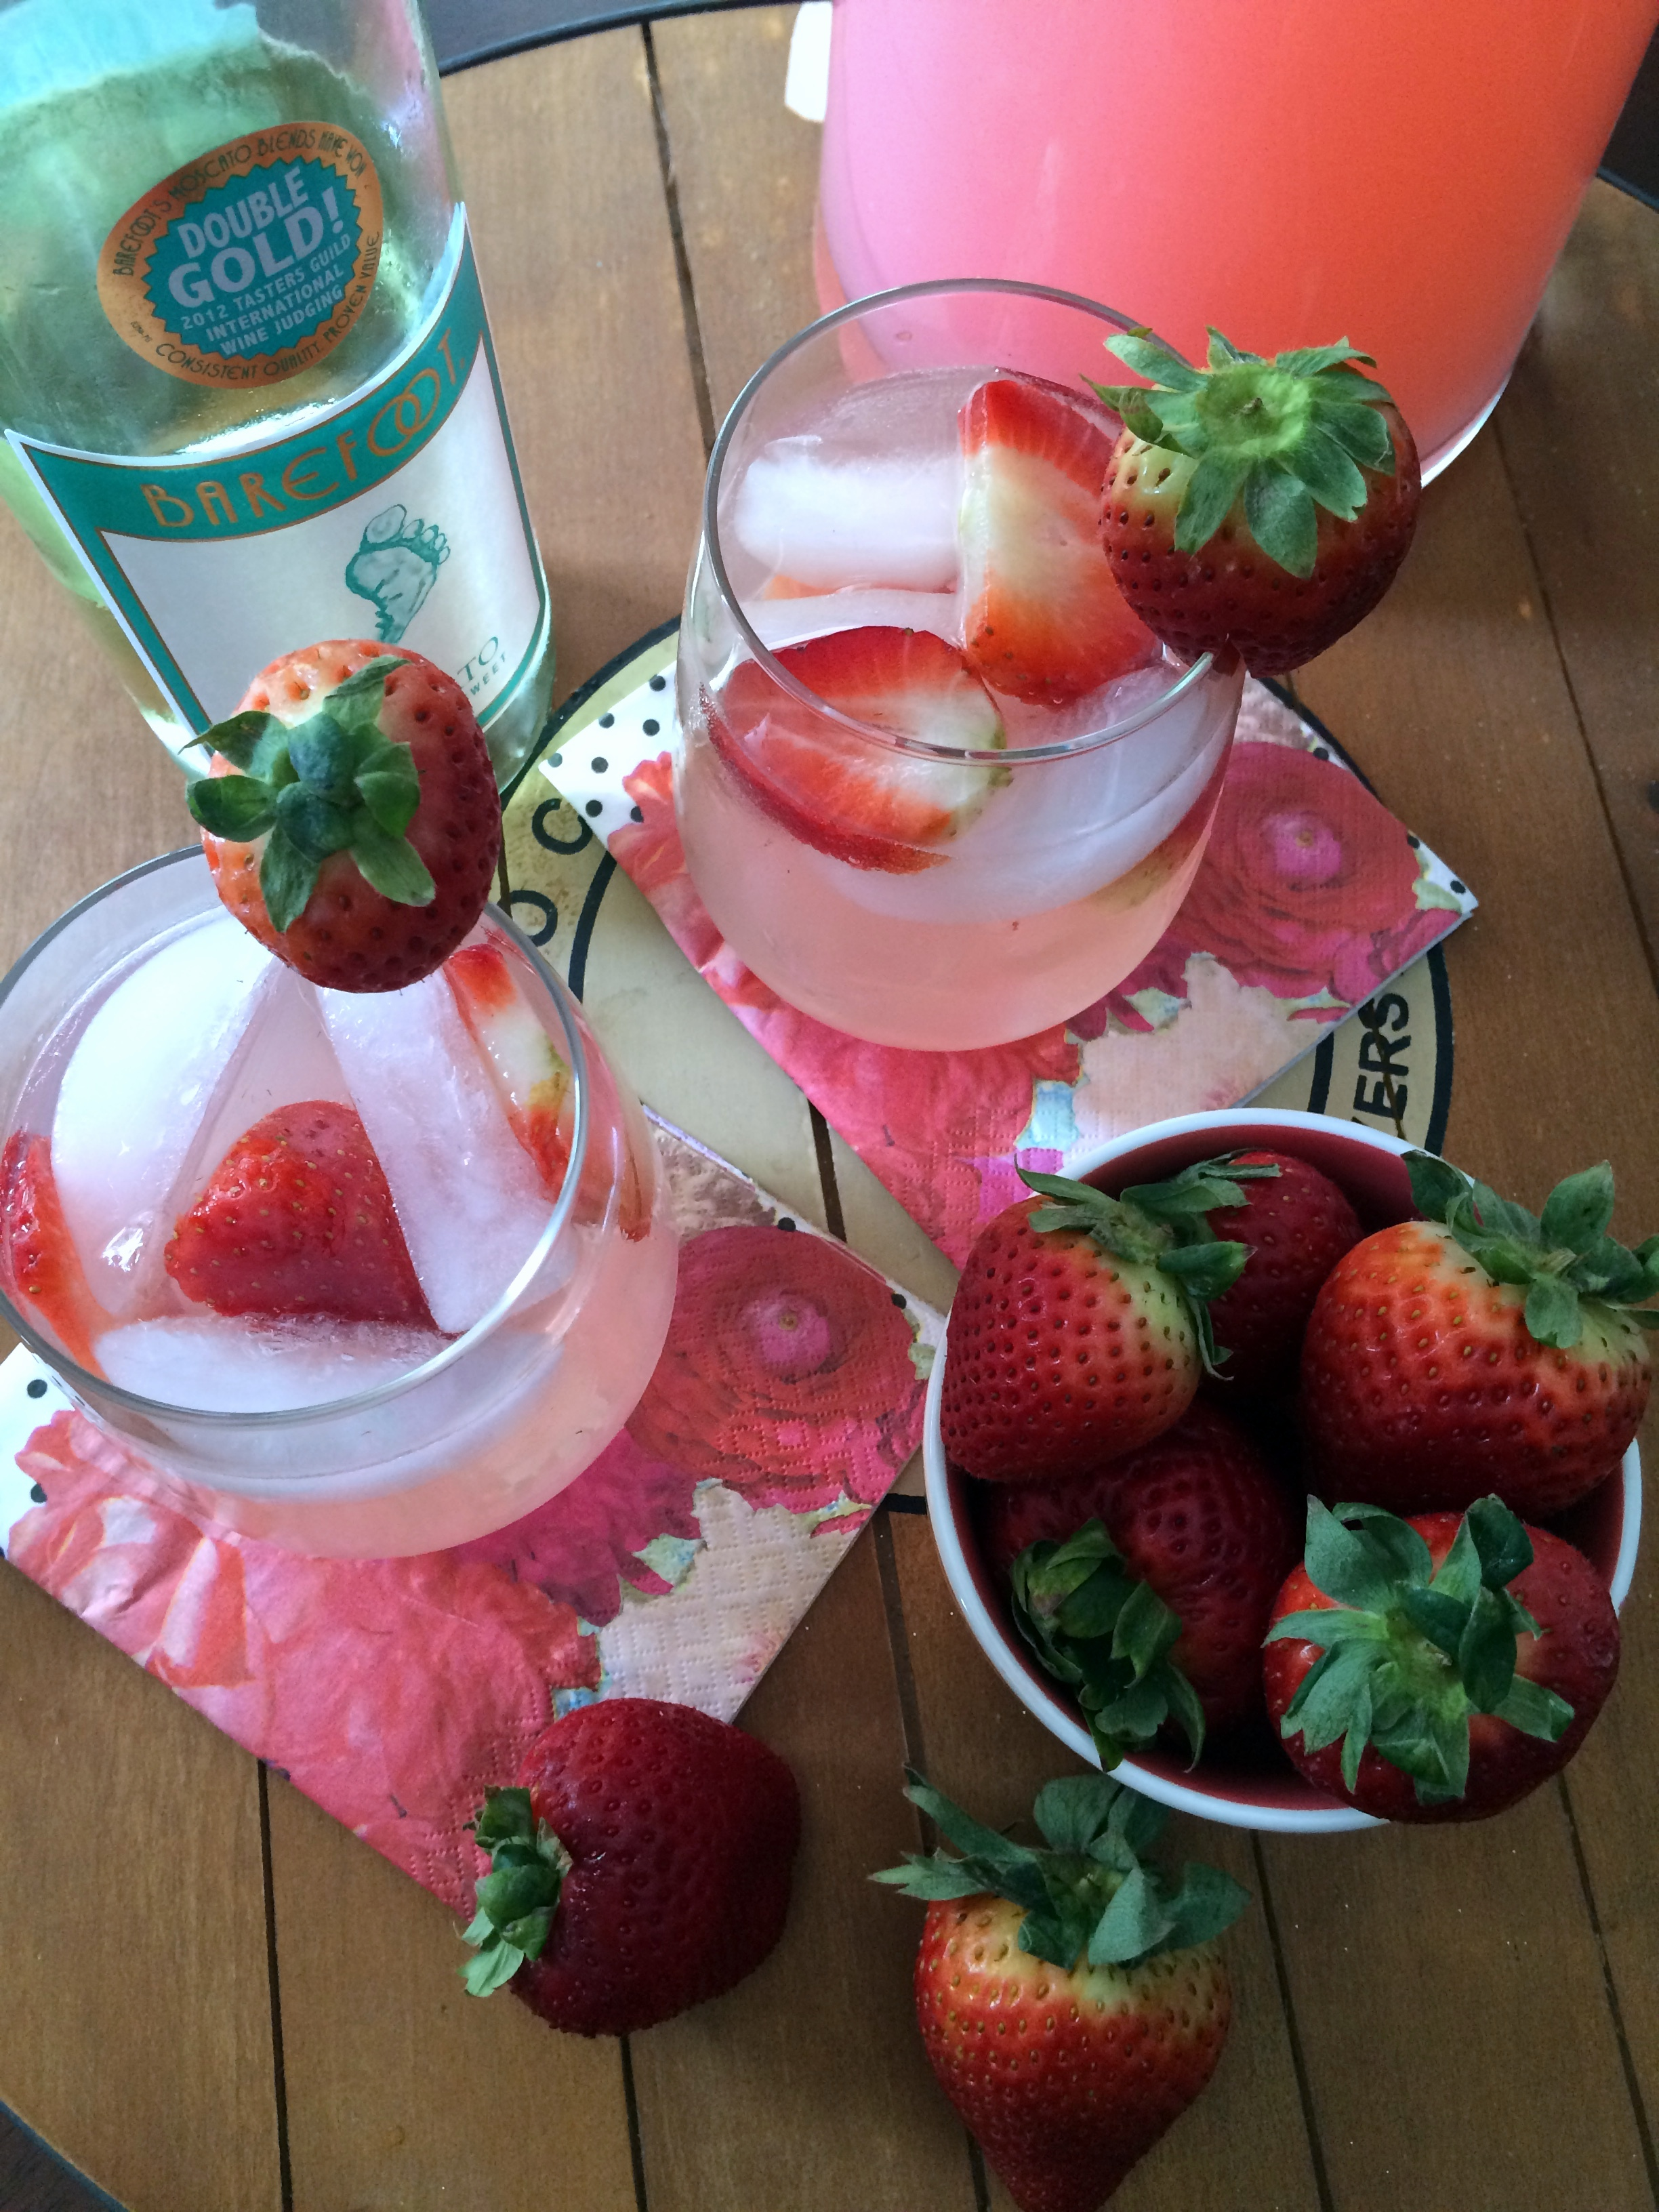 Strawberry lemonade, Moscato wine, and fresh strawberries make for a great drink!